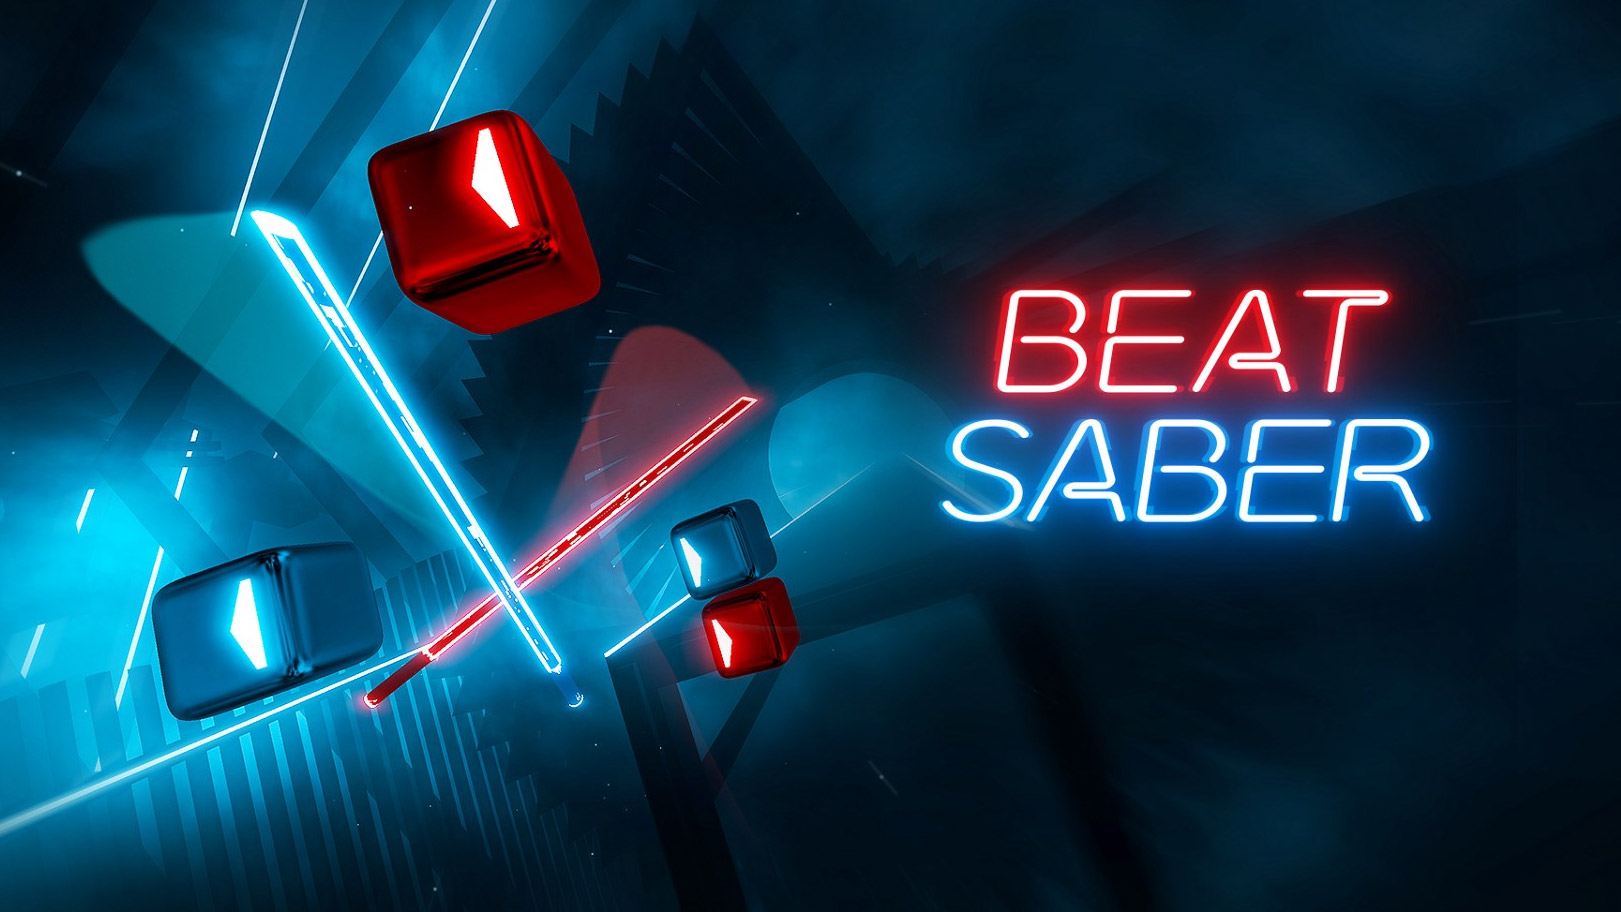 Facebook Acquires 'Beat Saber' Studio Beat Games